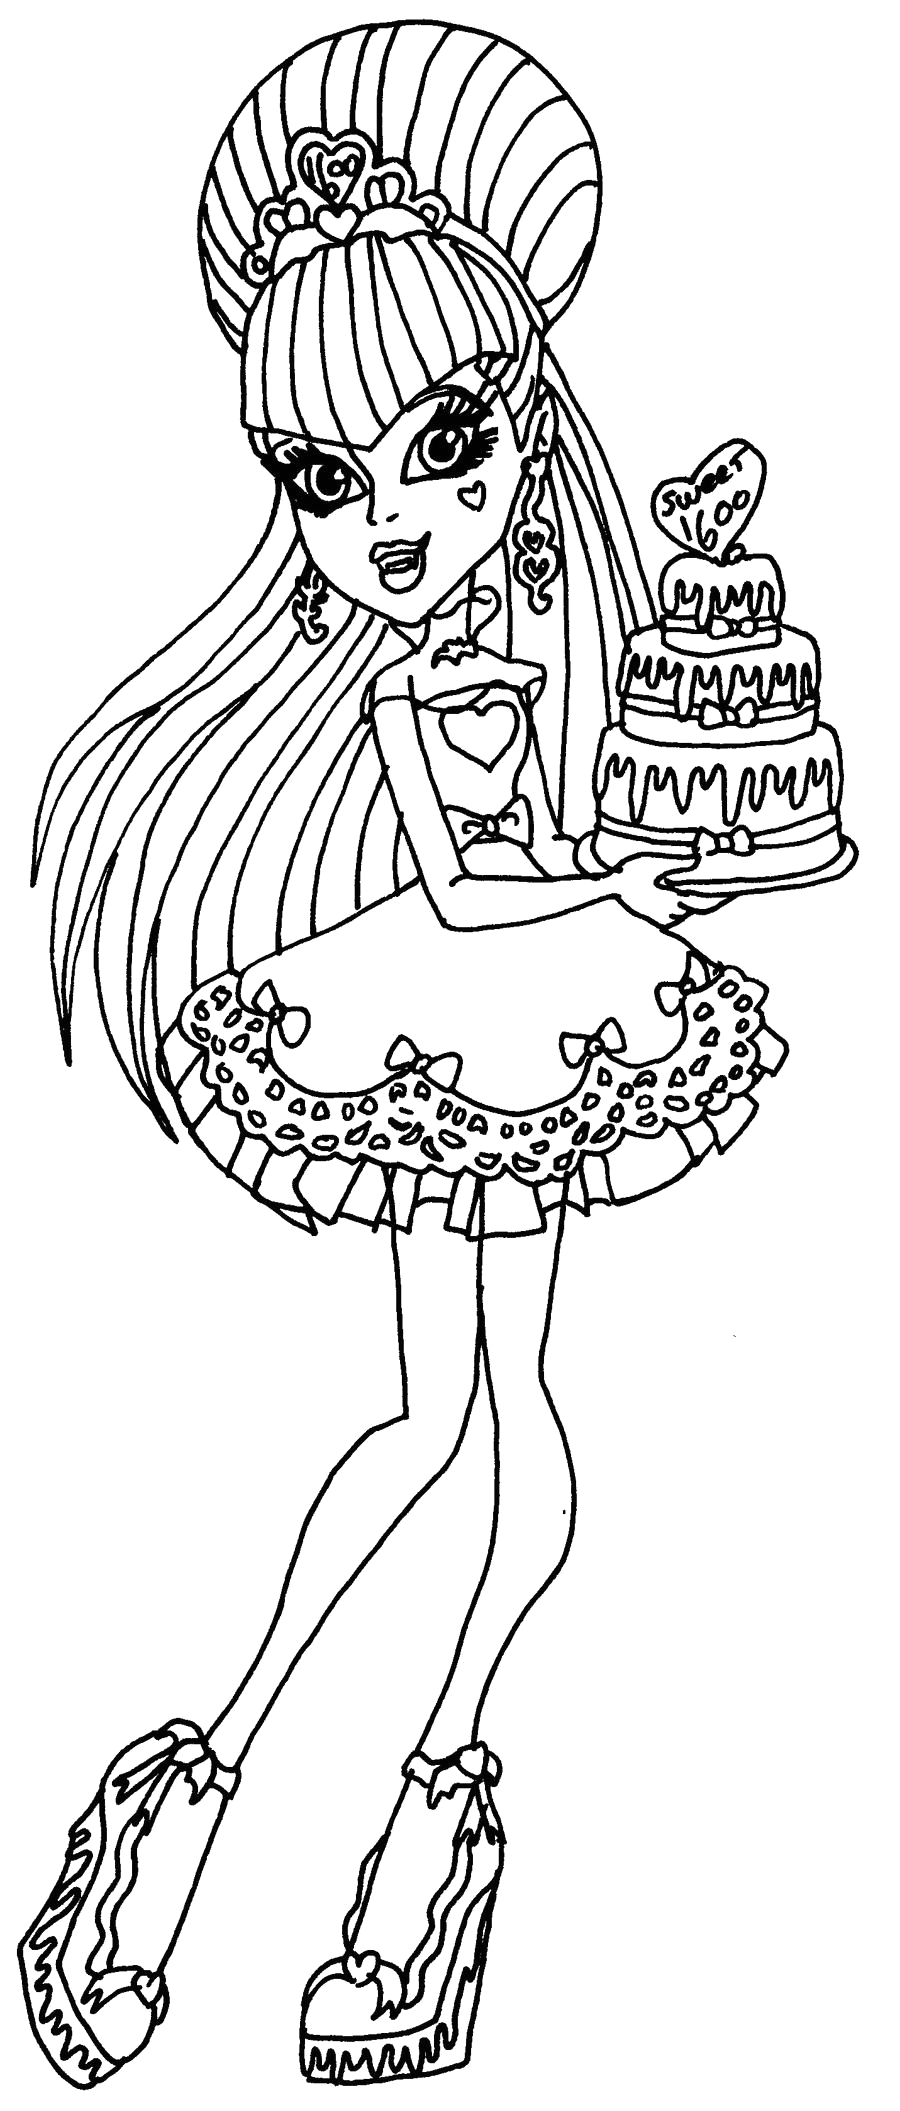 Monster High Draculaura Sweet 1600 Coloring Pages Draculaura Sweet 1600 by Elfkena On Deviantart